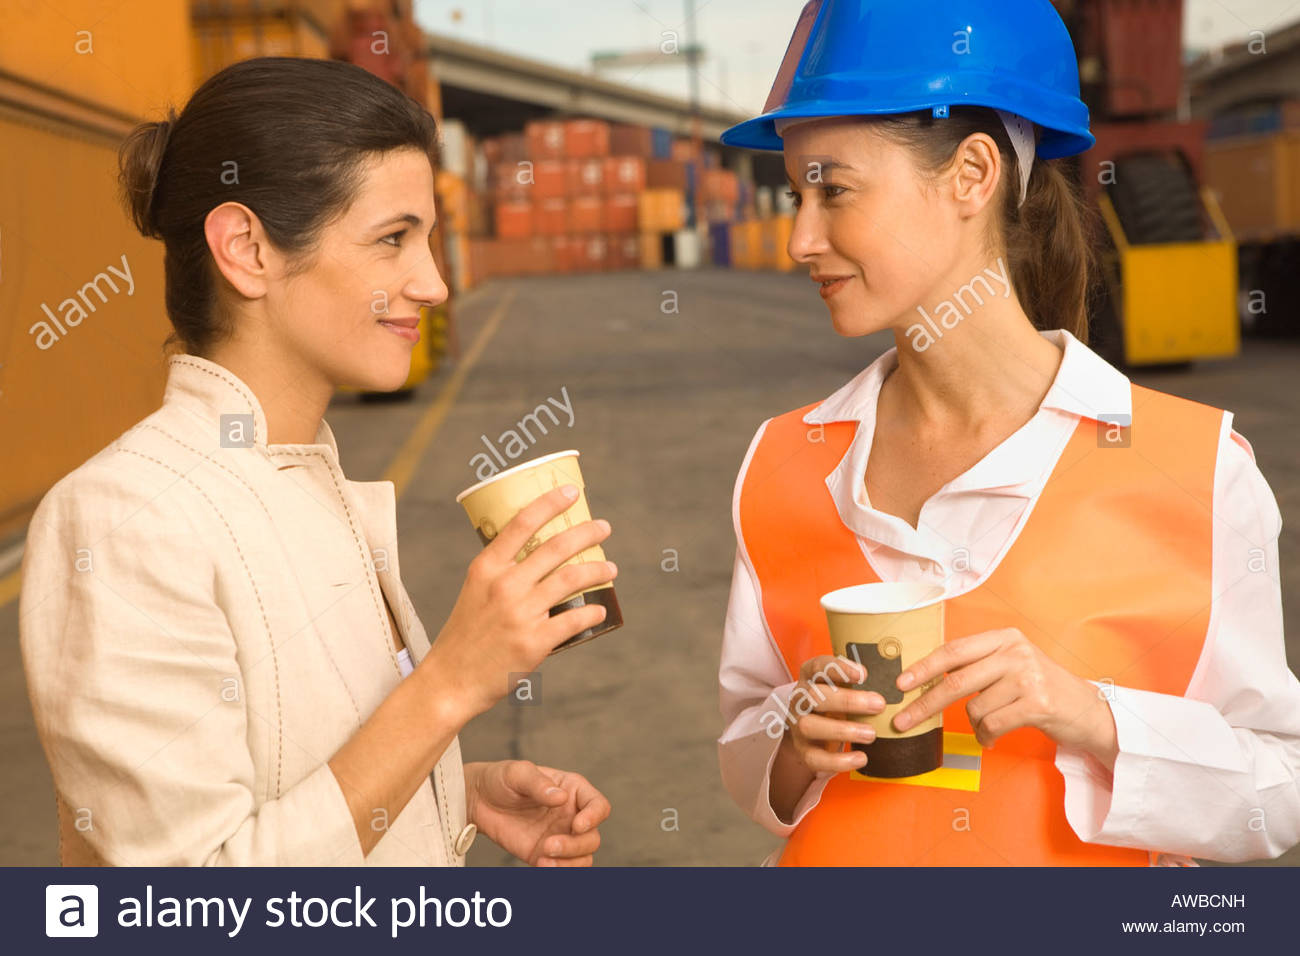 Two businesswomen holding disposable cups and talking - Stock Image